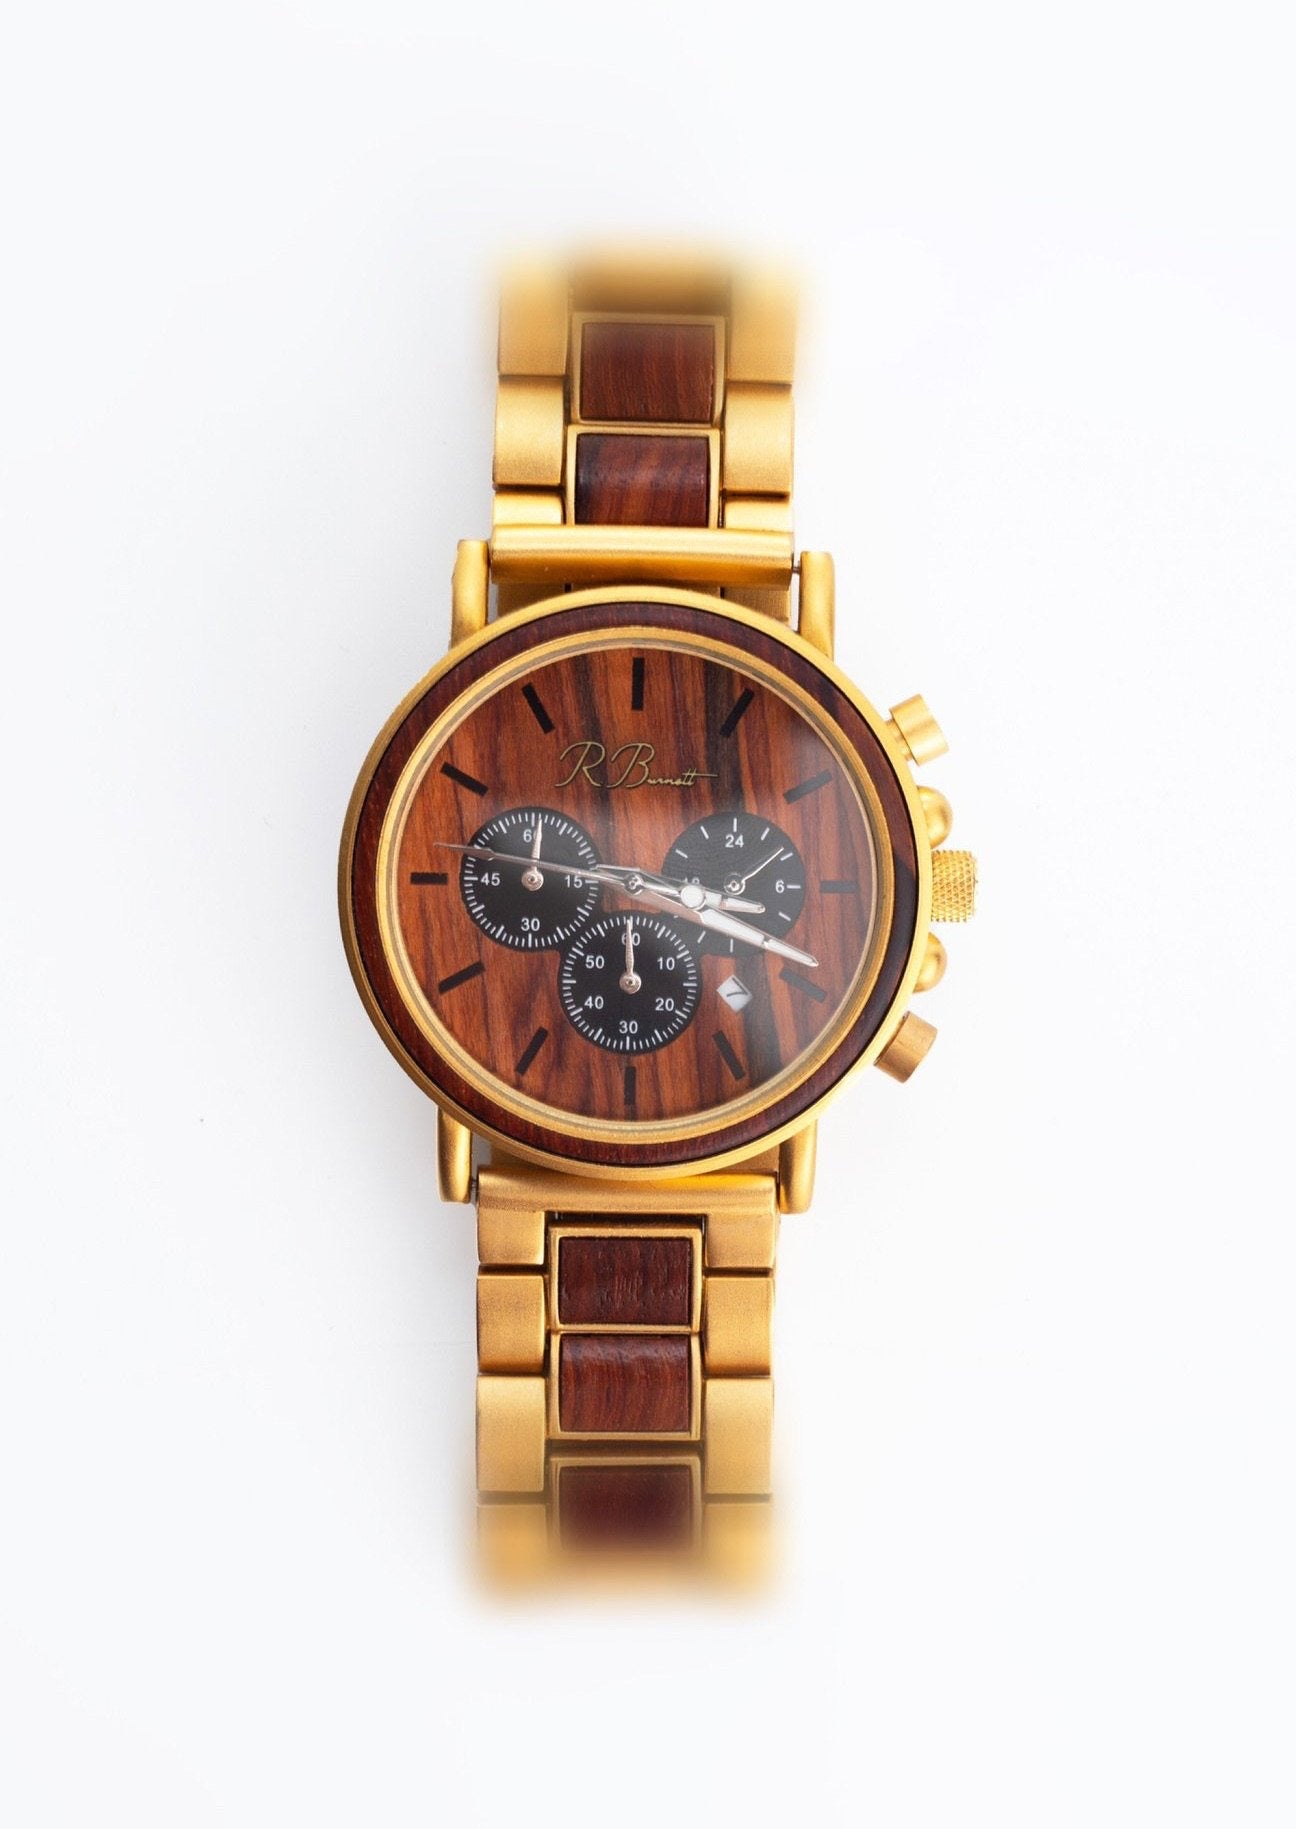 Aurum - Mens Wooden Watch